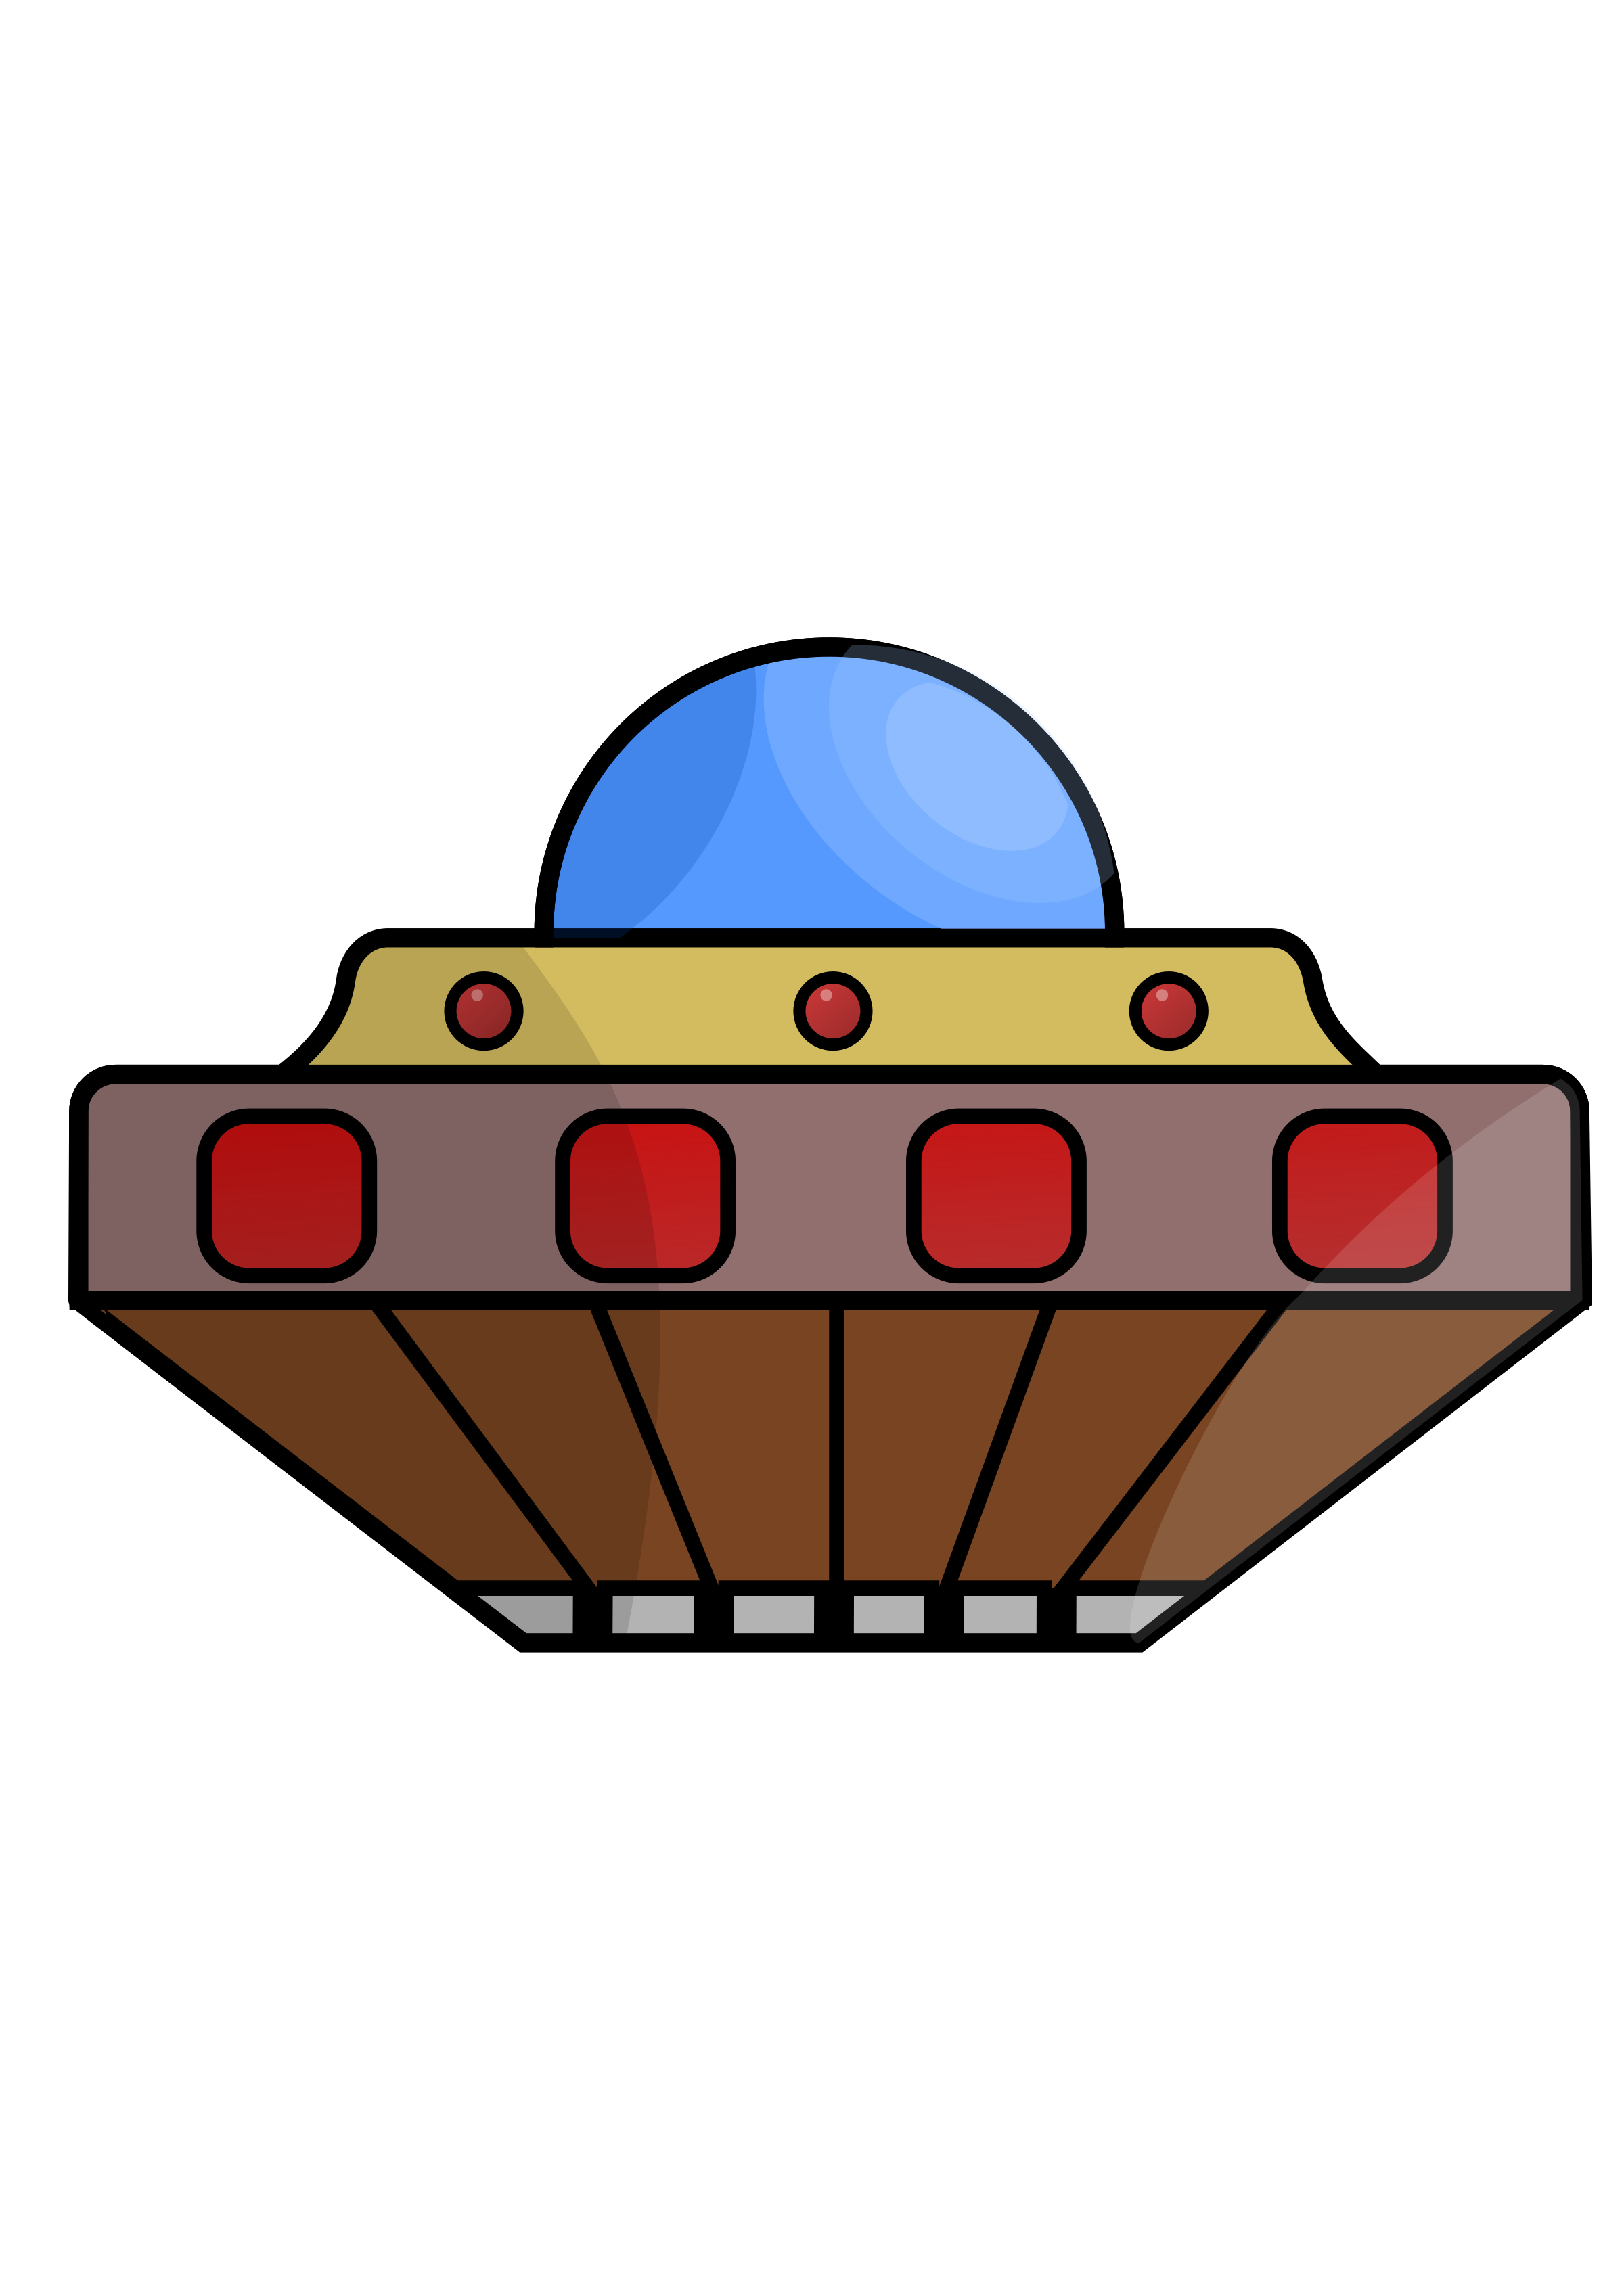 Ufo clipart spaceship. Big image png